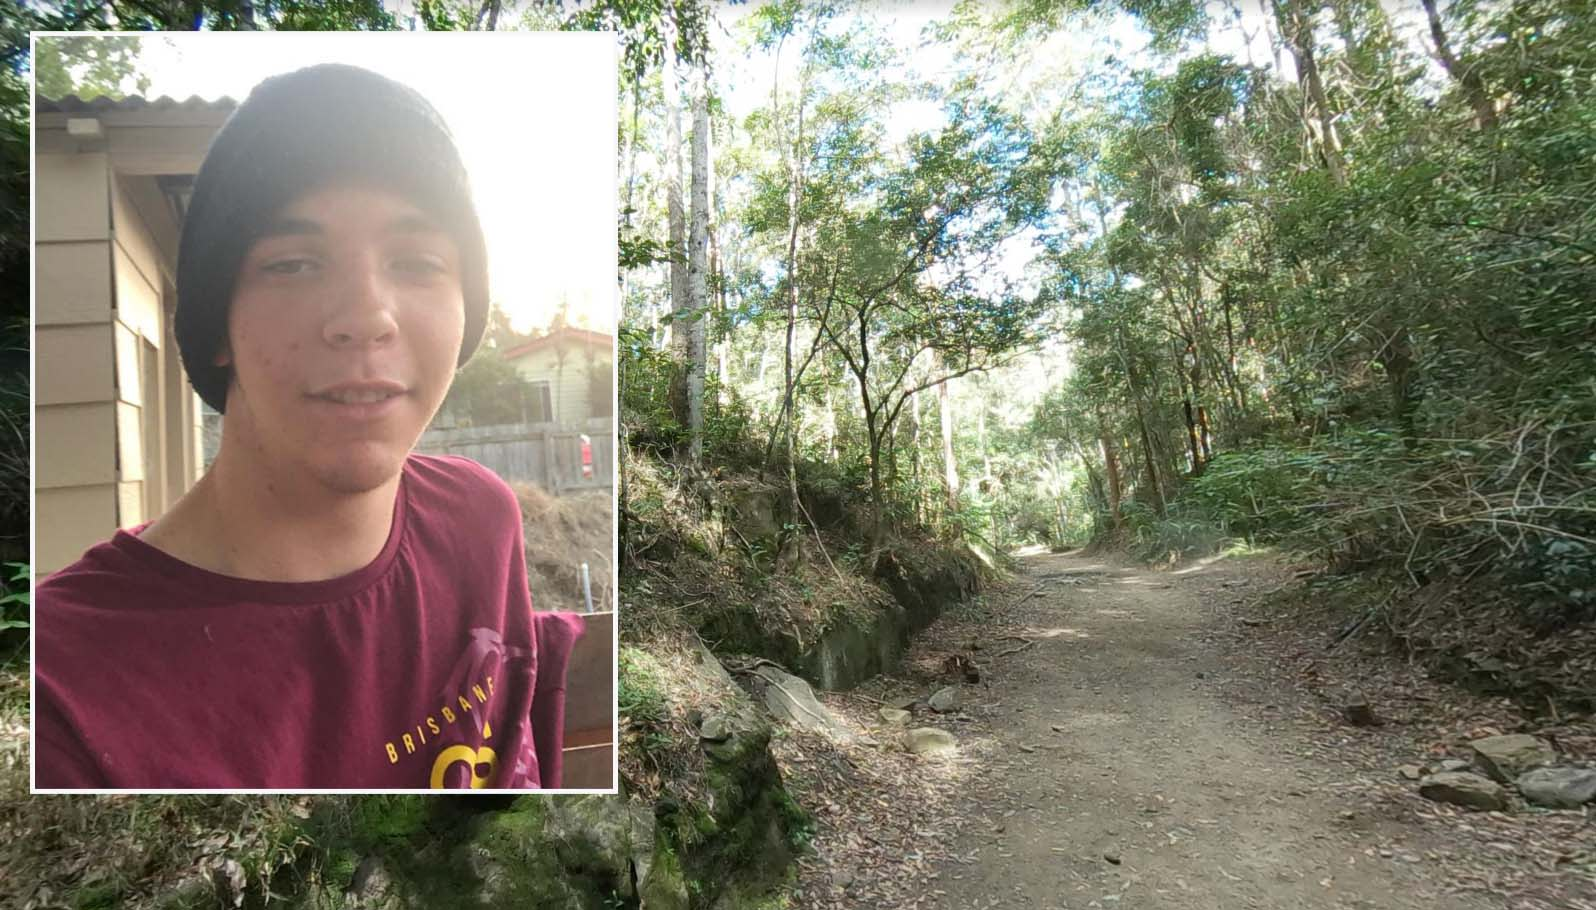 Body found in search for 14-year-old boy missing for two weeks